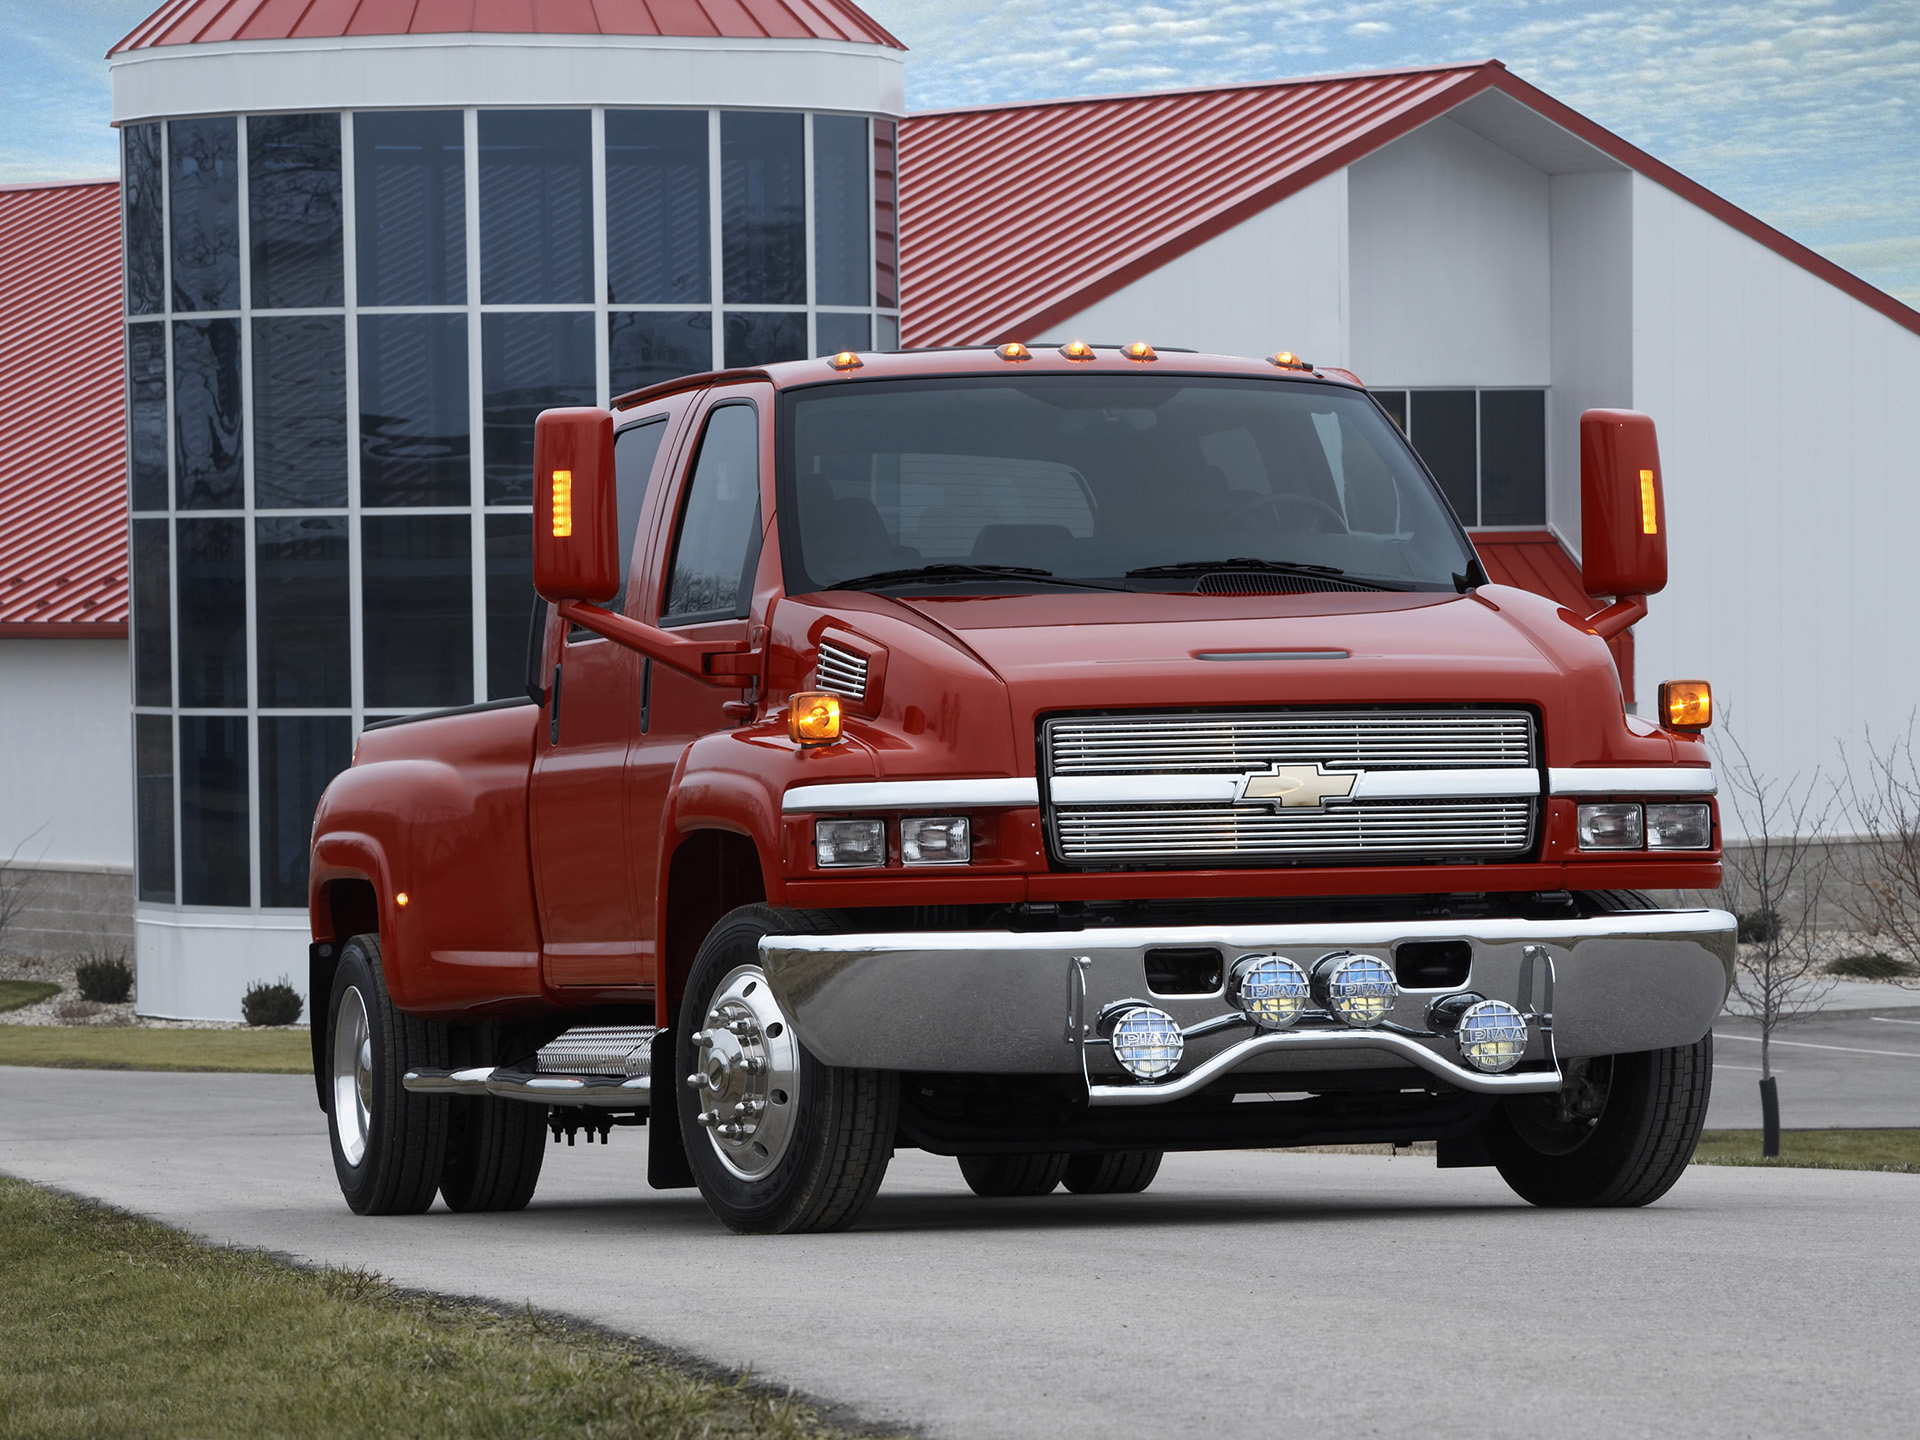 Chevrolet C4500 photos - PhotoGallery with 24 pics ...